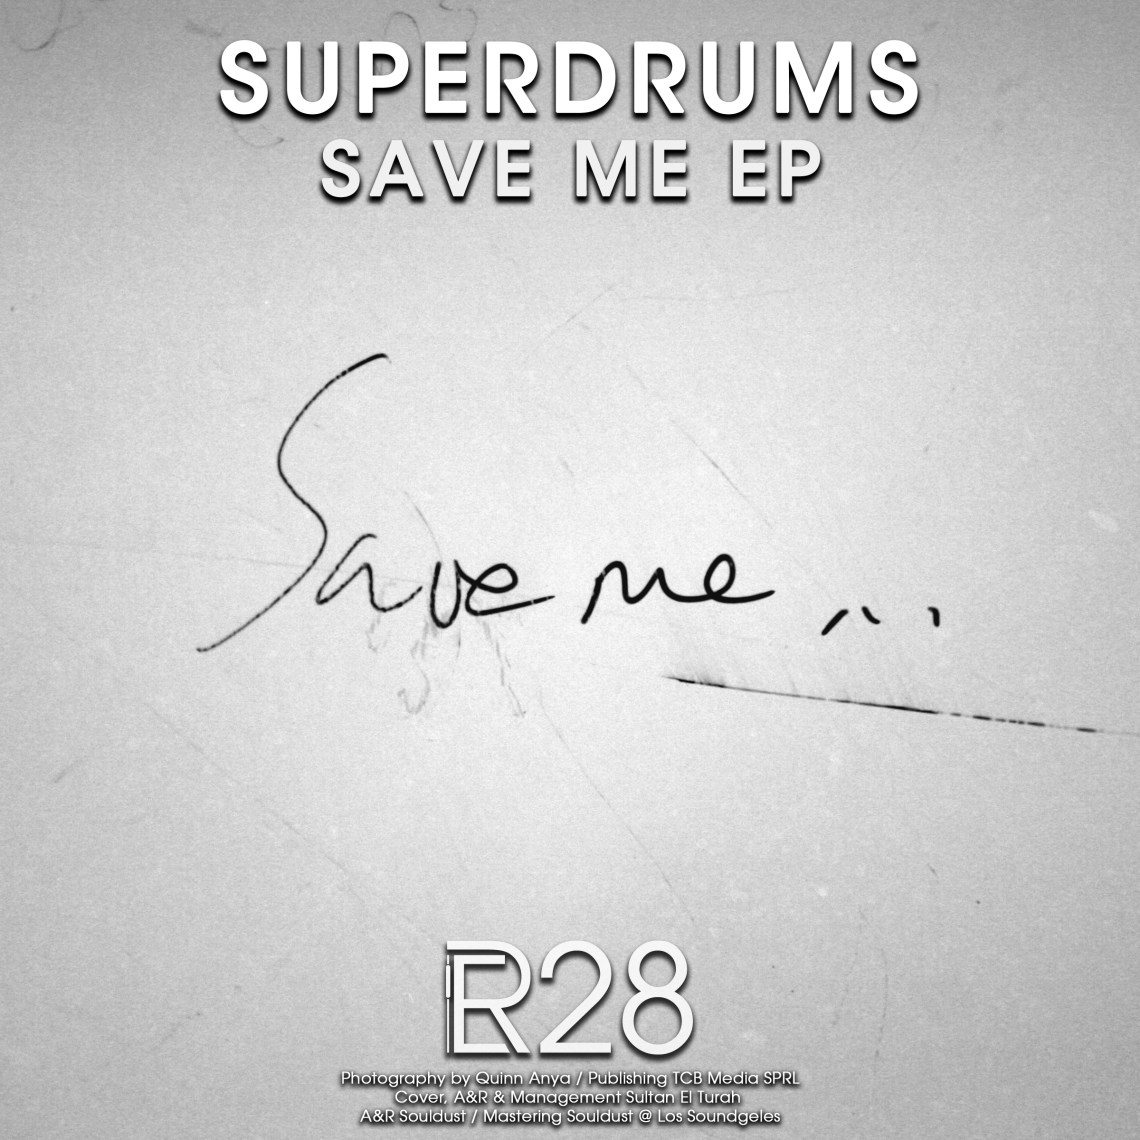 ER028 - Superdrums - Save Me (incl. Max Duke Remix) - Electronical Reeds